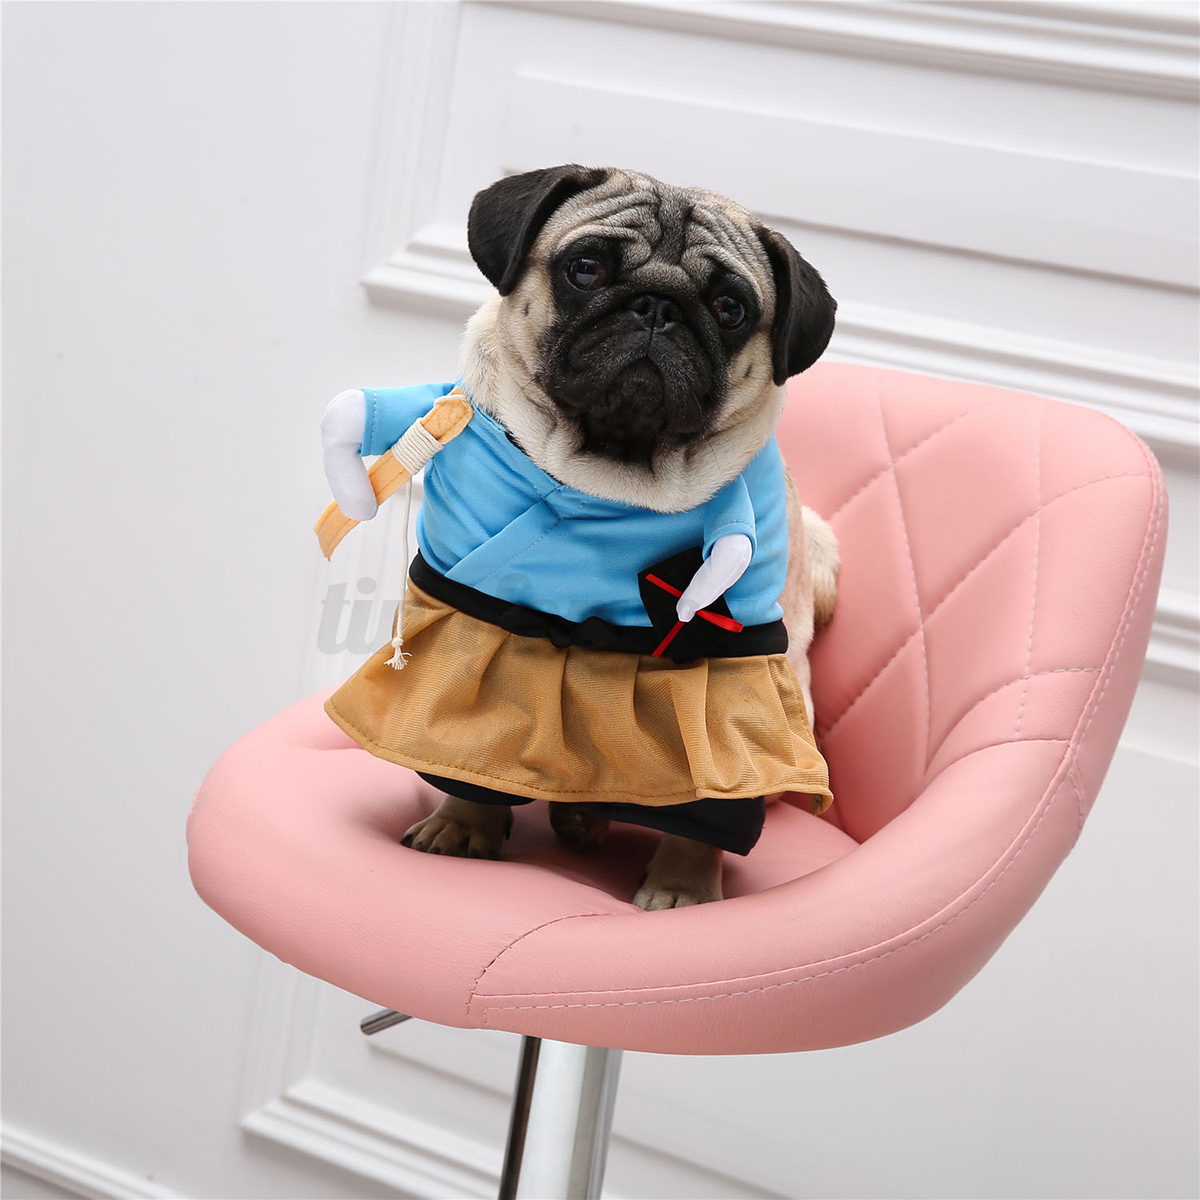 Cat-Dog-Tops-Clothes-Costume-Cool-Christmas-Halloween-Costume-Pet-Clothes thumbnail 10